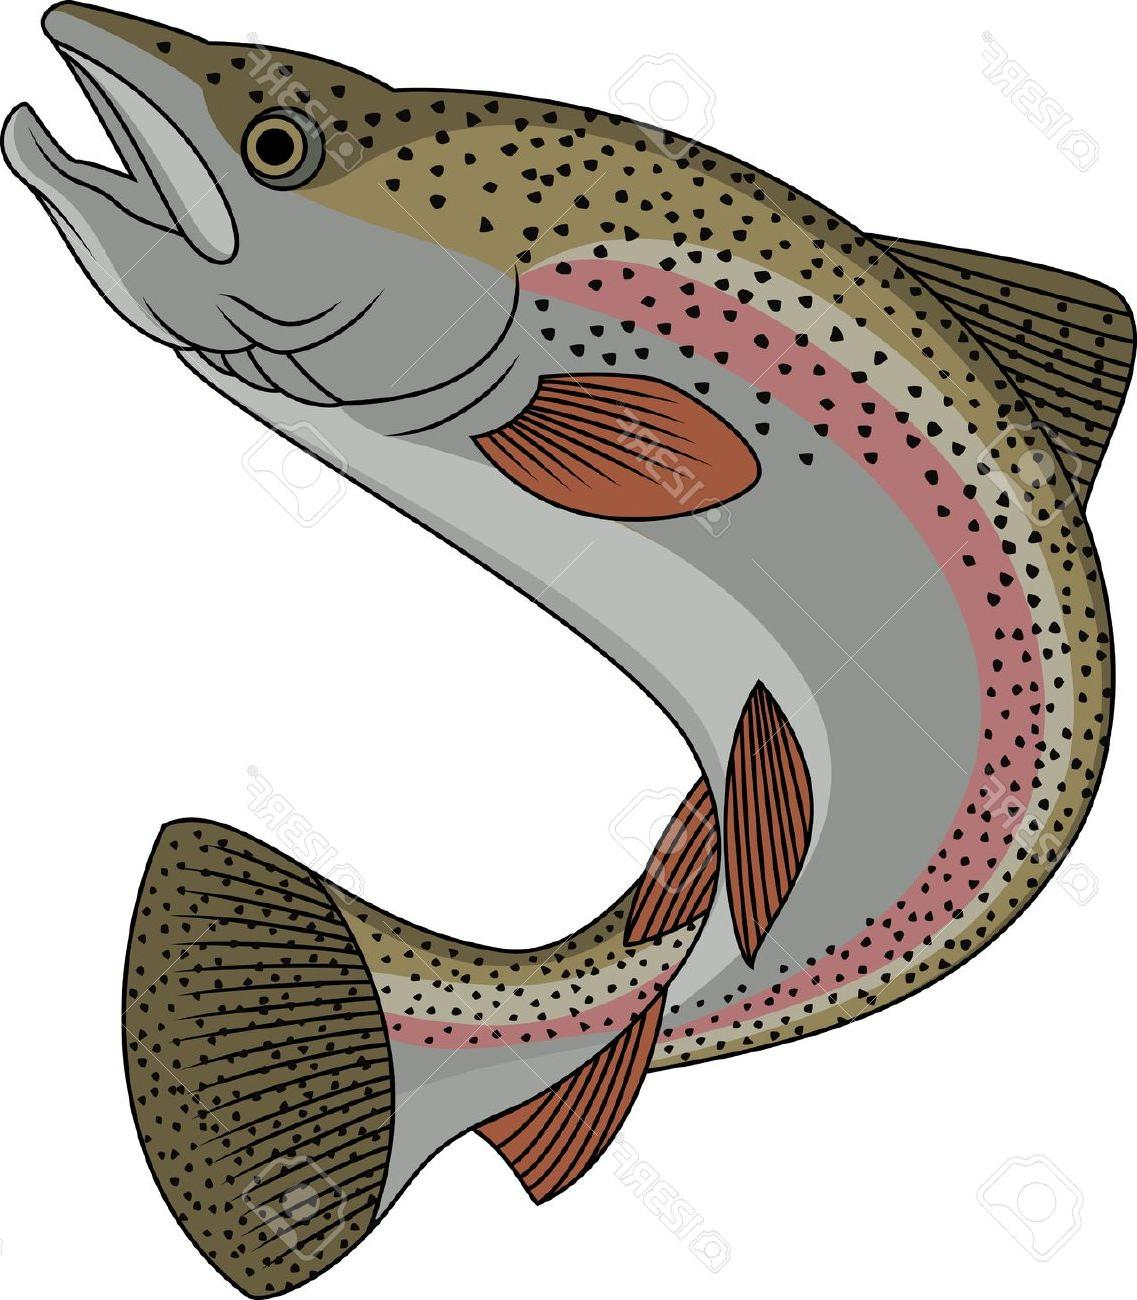 324 Trout free clipart.